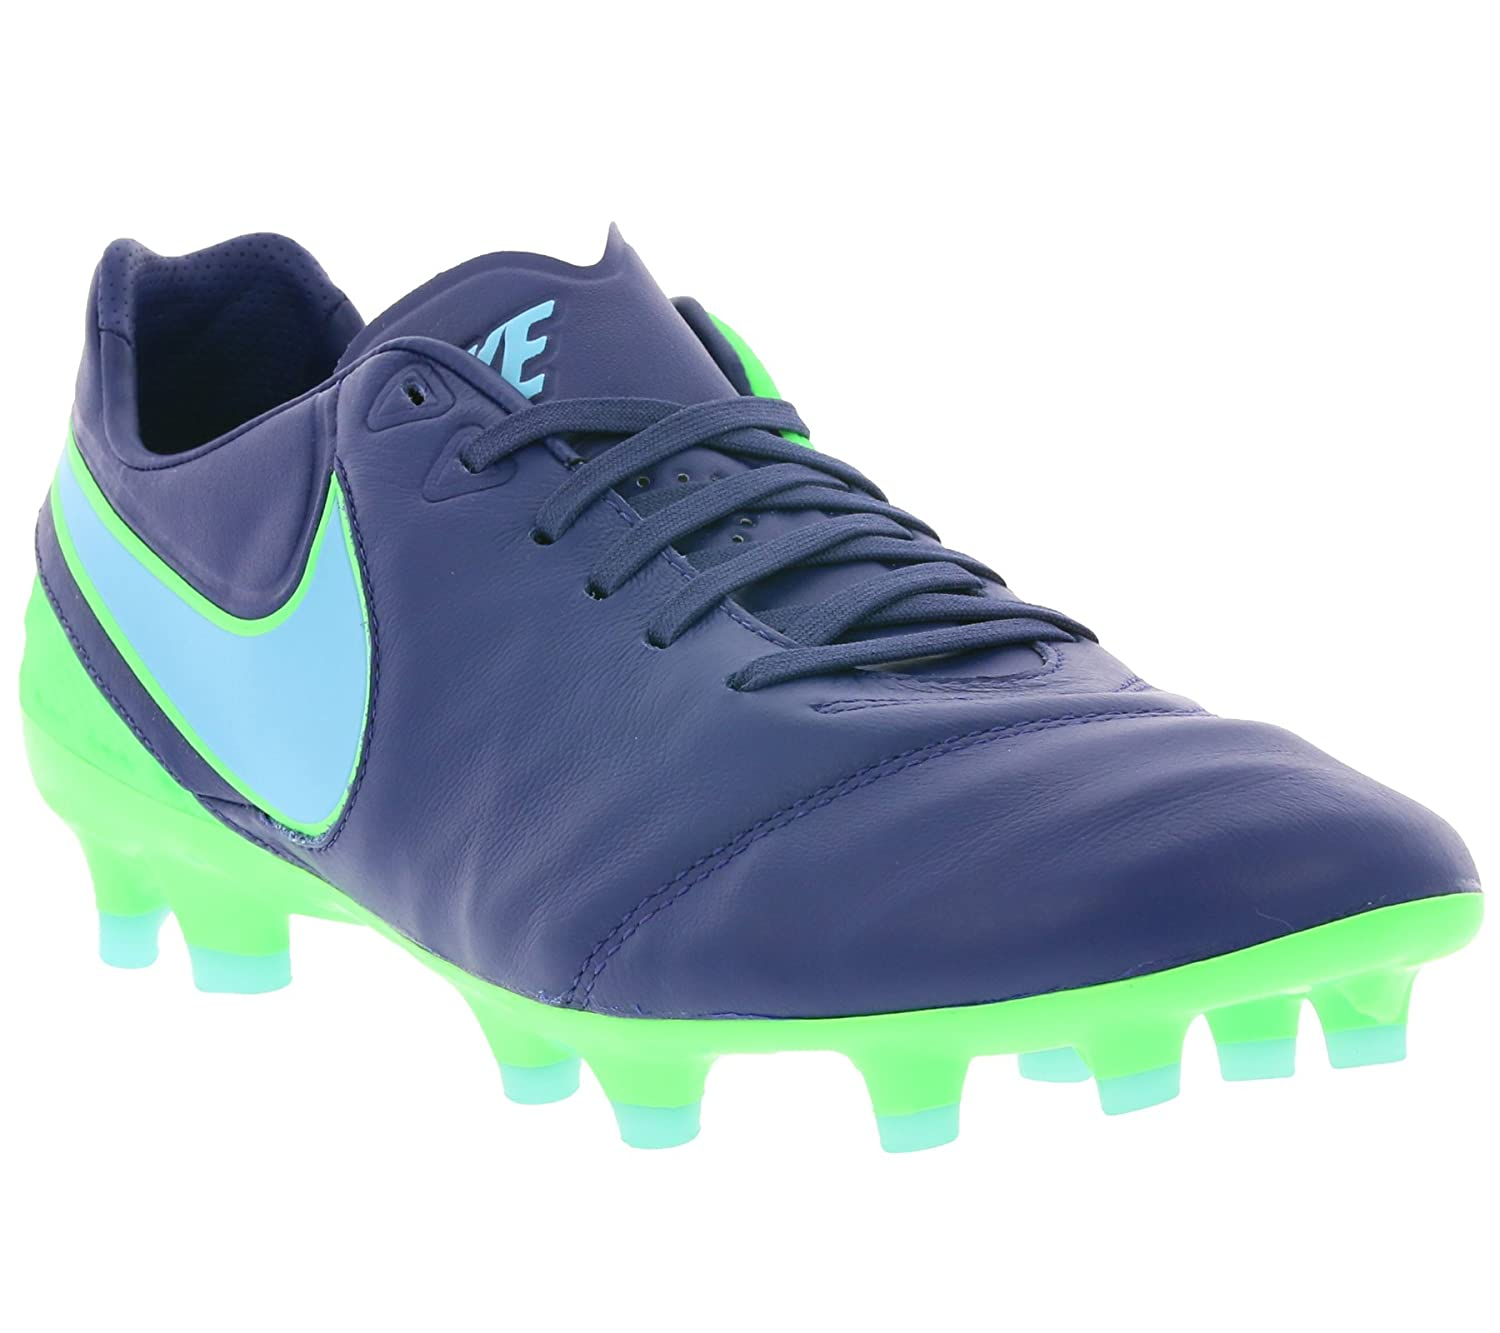 online store 67777 7f1e7 Amazon.com  Nike Men s Tiempo Legacy FG Soccer Cleats  Toys   Games